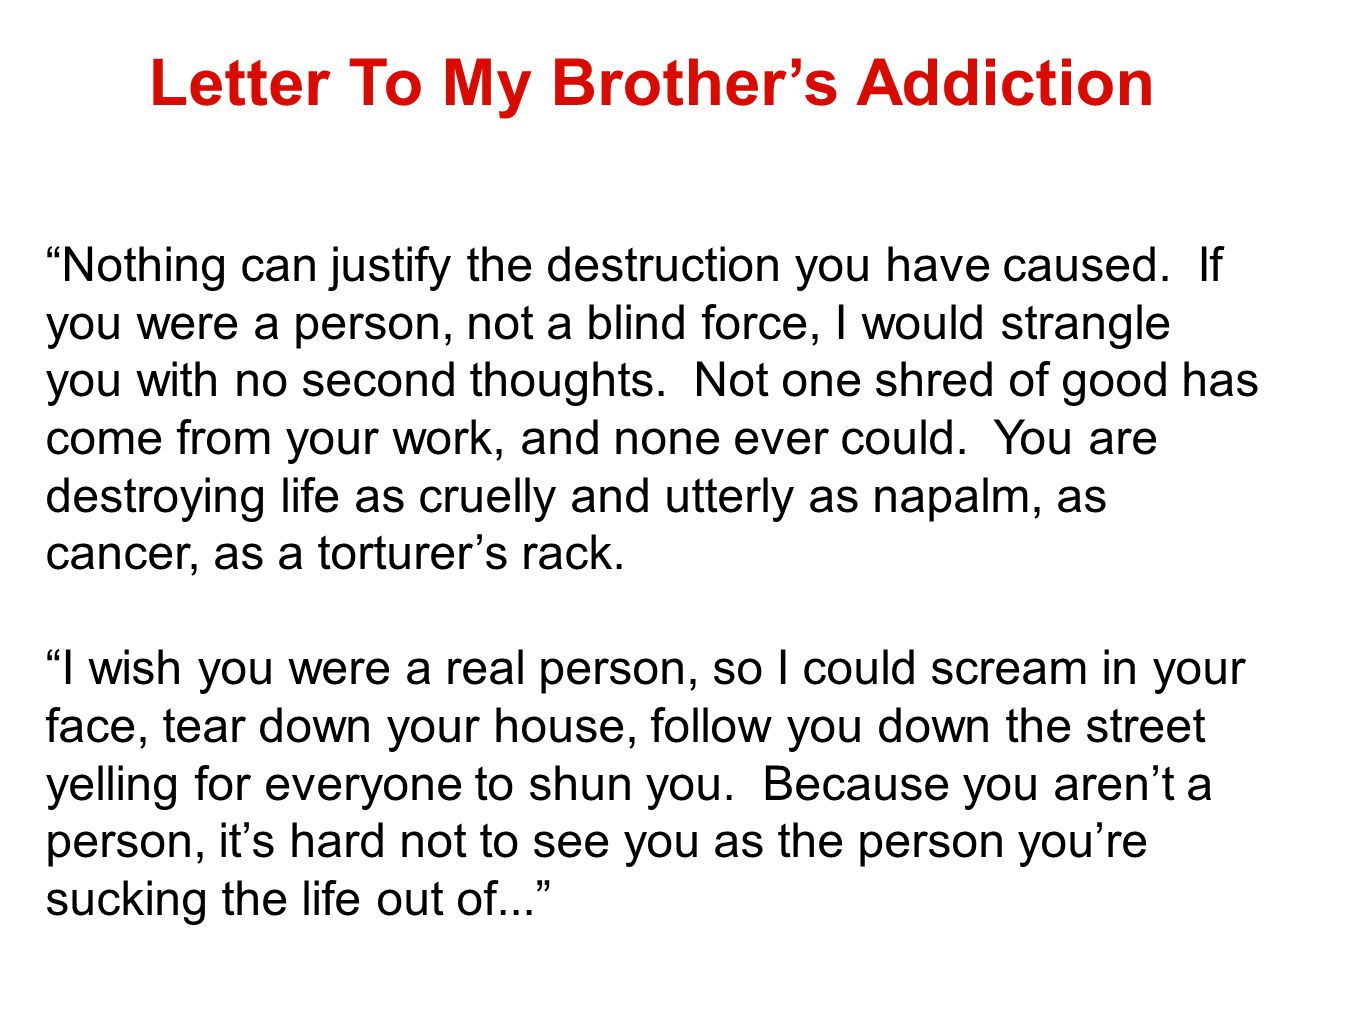 Letter To My Brother's Addiction